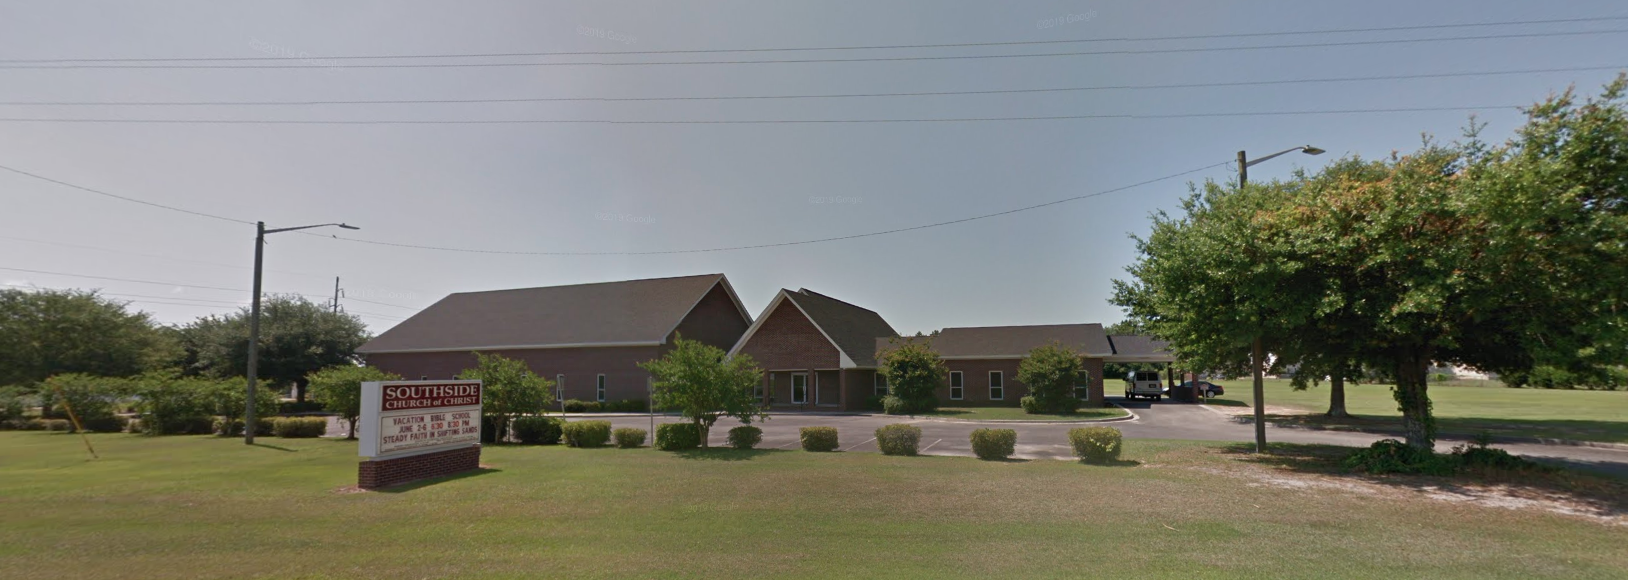 Southside Church of Christ building